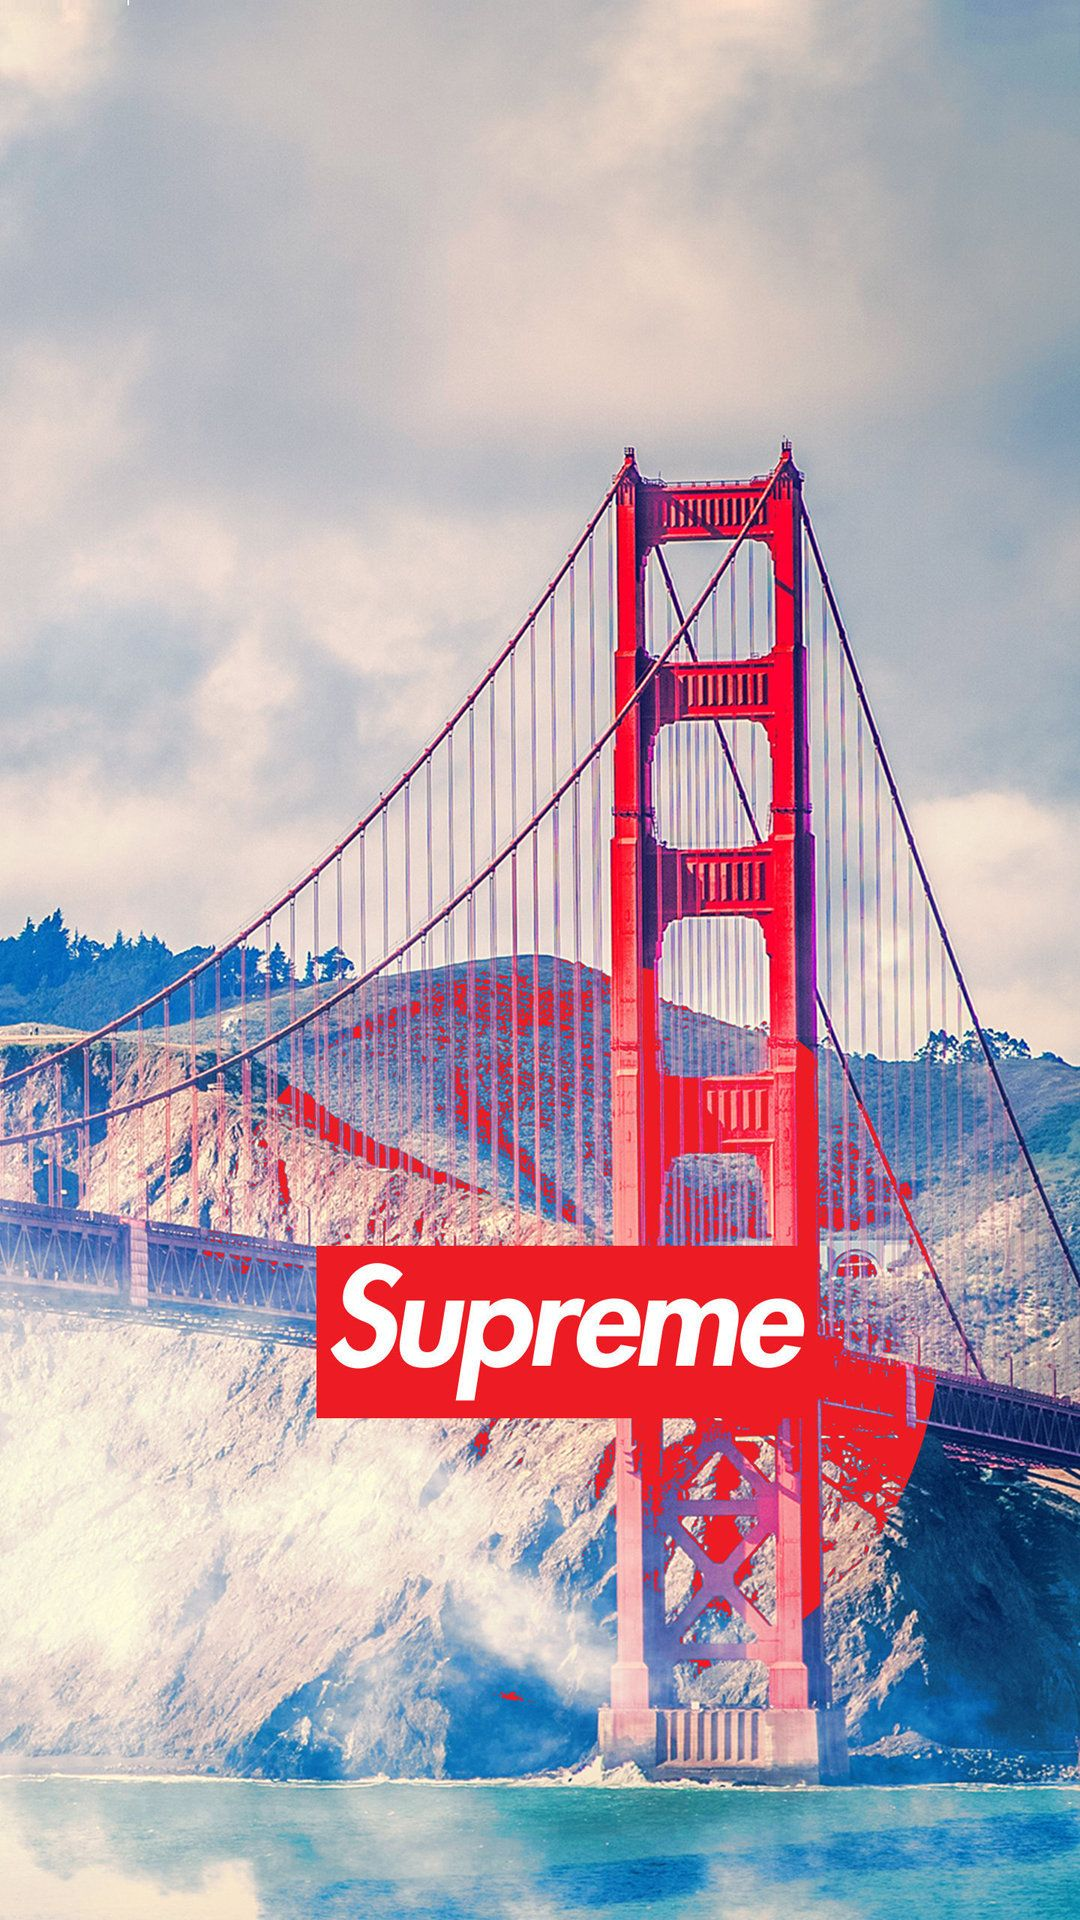 San francisco supreme tap to see more of the supreme - San francisco iphone wallpaper ...